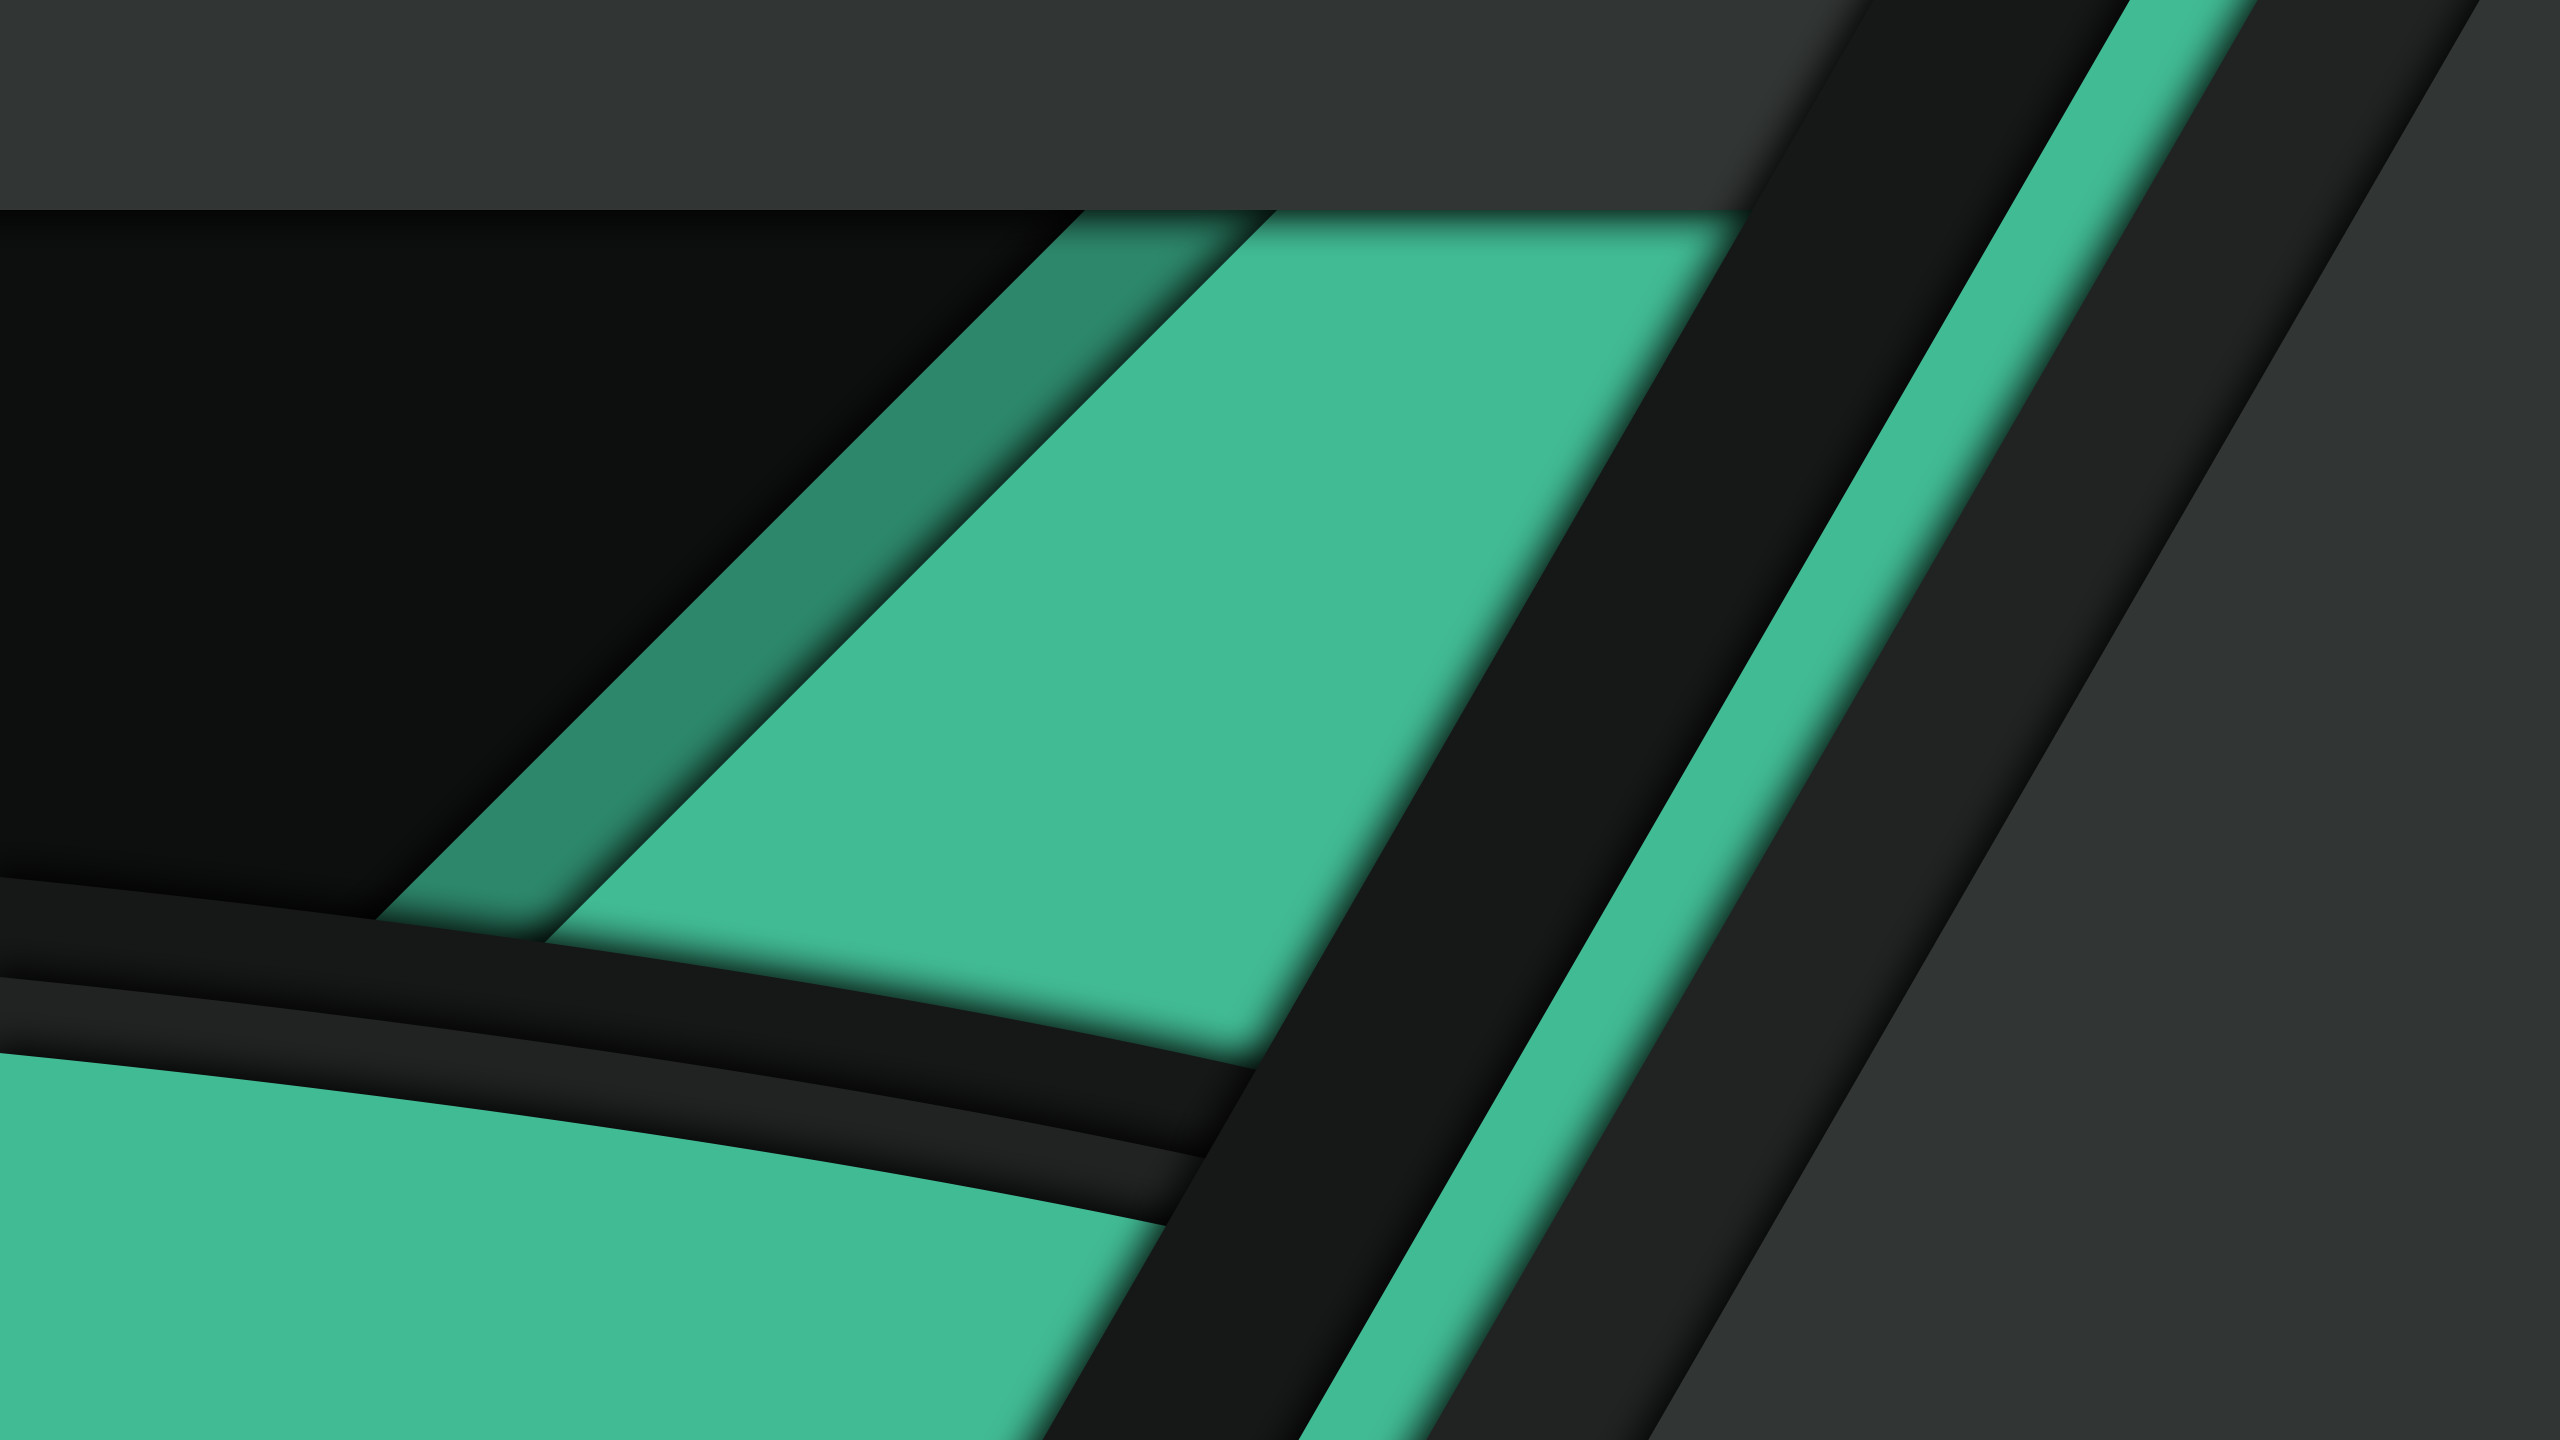 Black Green Material Design, HD Abstract, 4k Wallpapers ...